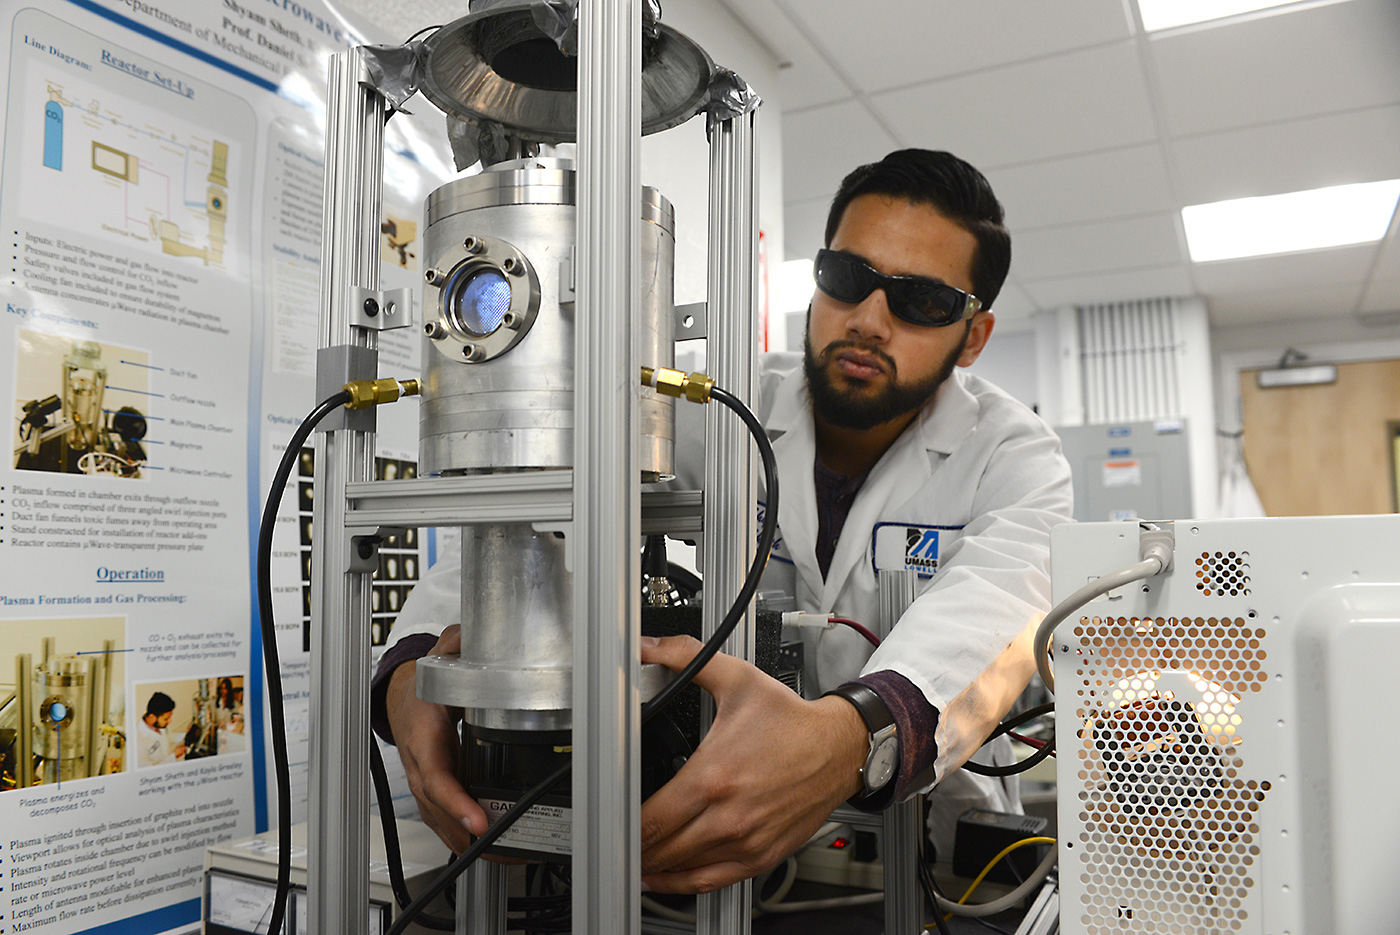 Student conducts experiment in Re-Engineered Energy Lab. The RE-ENGINEERED ENERGY LAB is researching how to use solar energy and electricity to develop new types of sustainable fuels and chemicals.